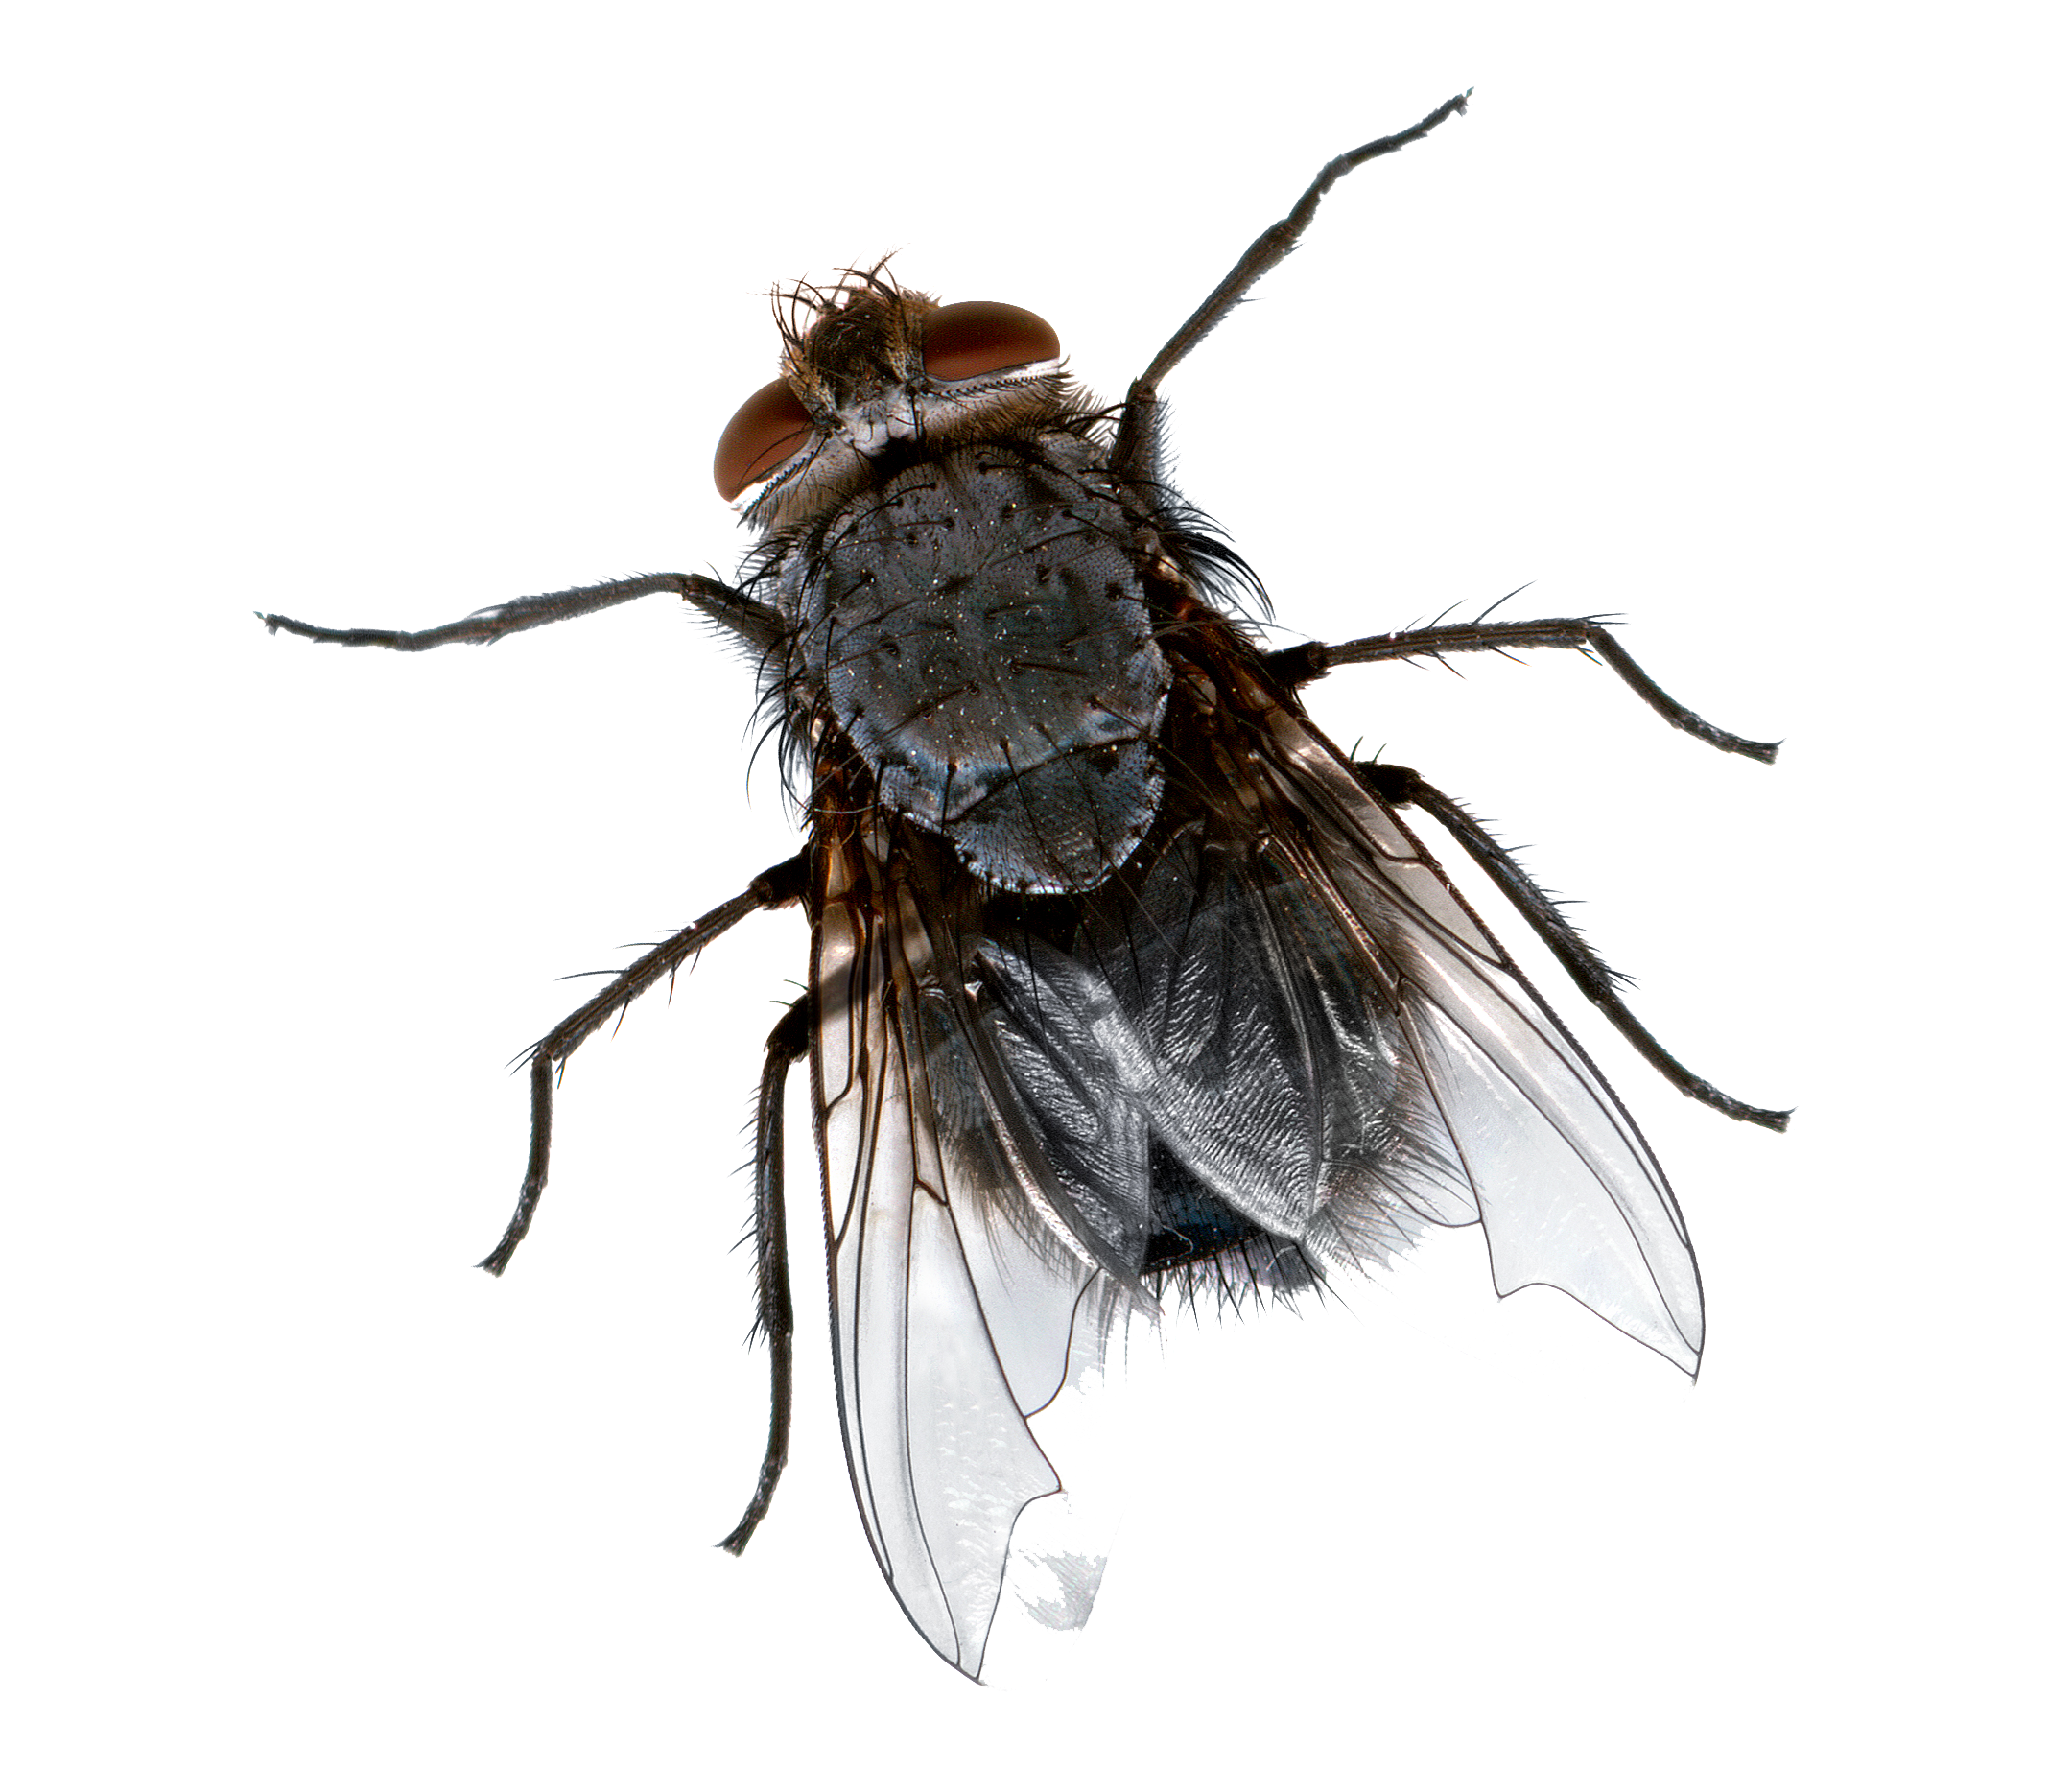 Fly clipart flying fly. Flies png images transparent